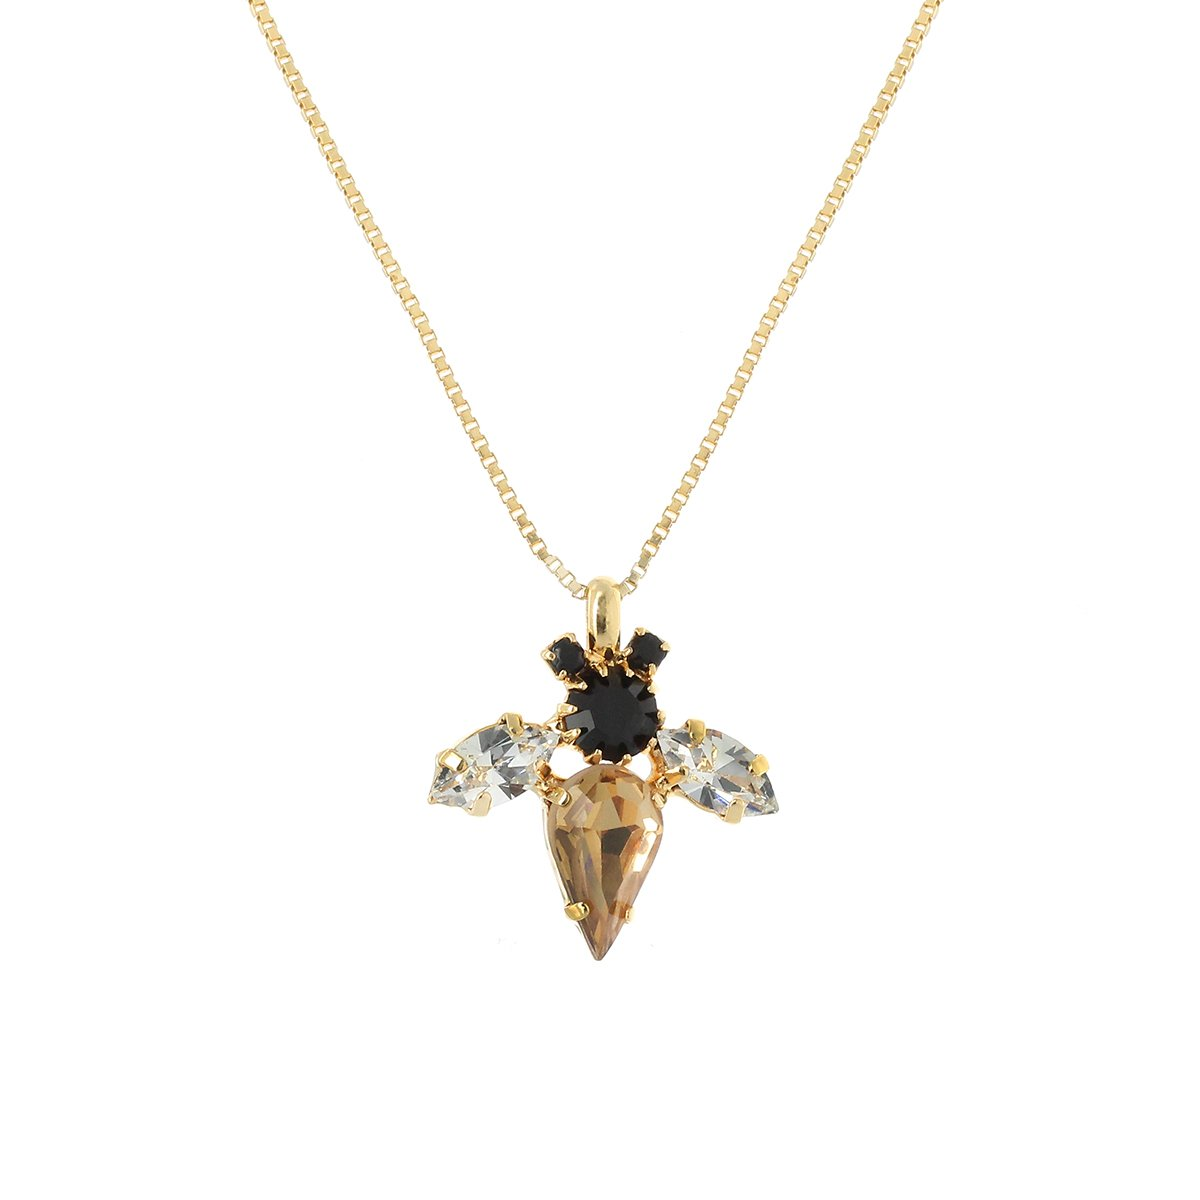 Bumble Bee Topaz Necklace